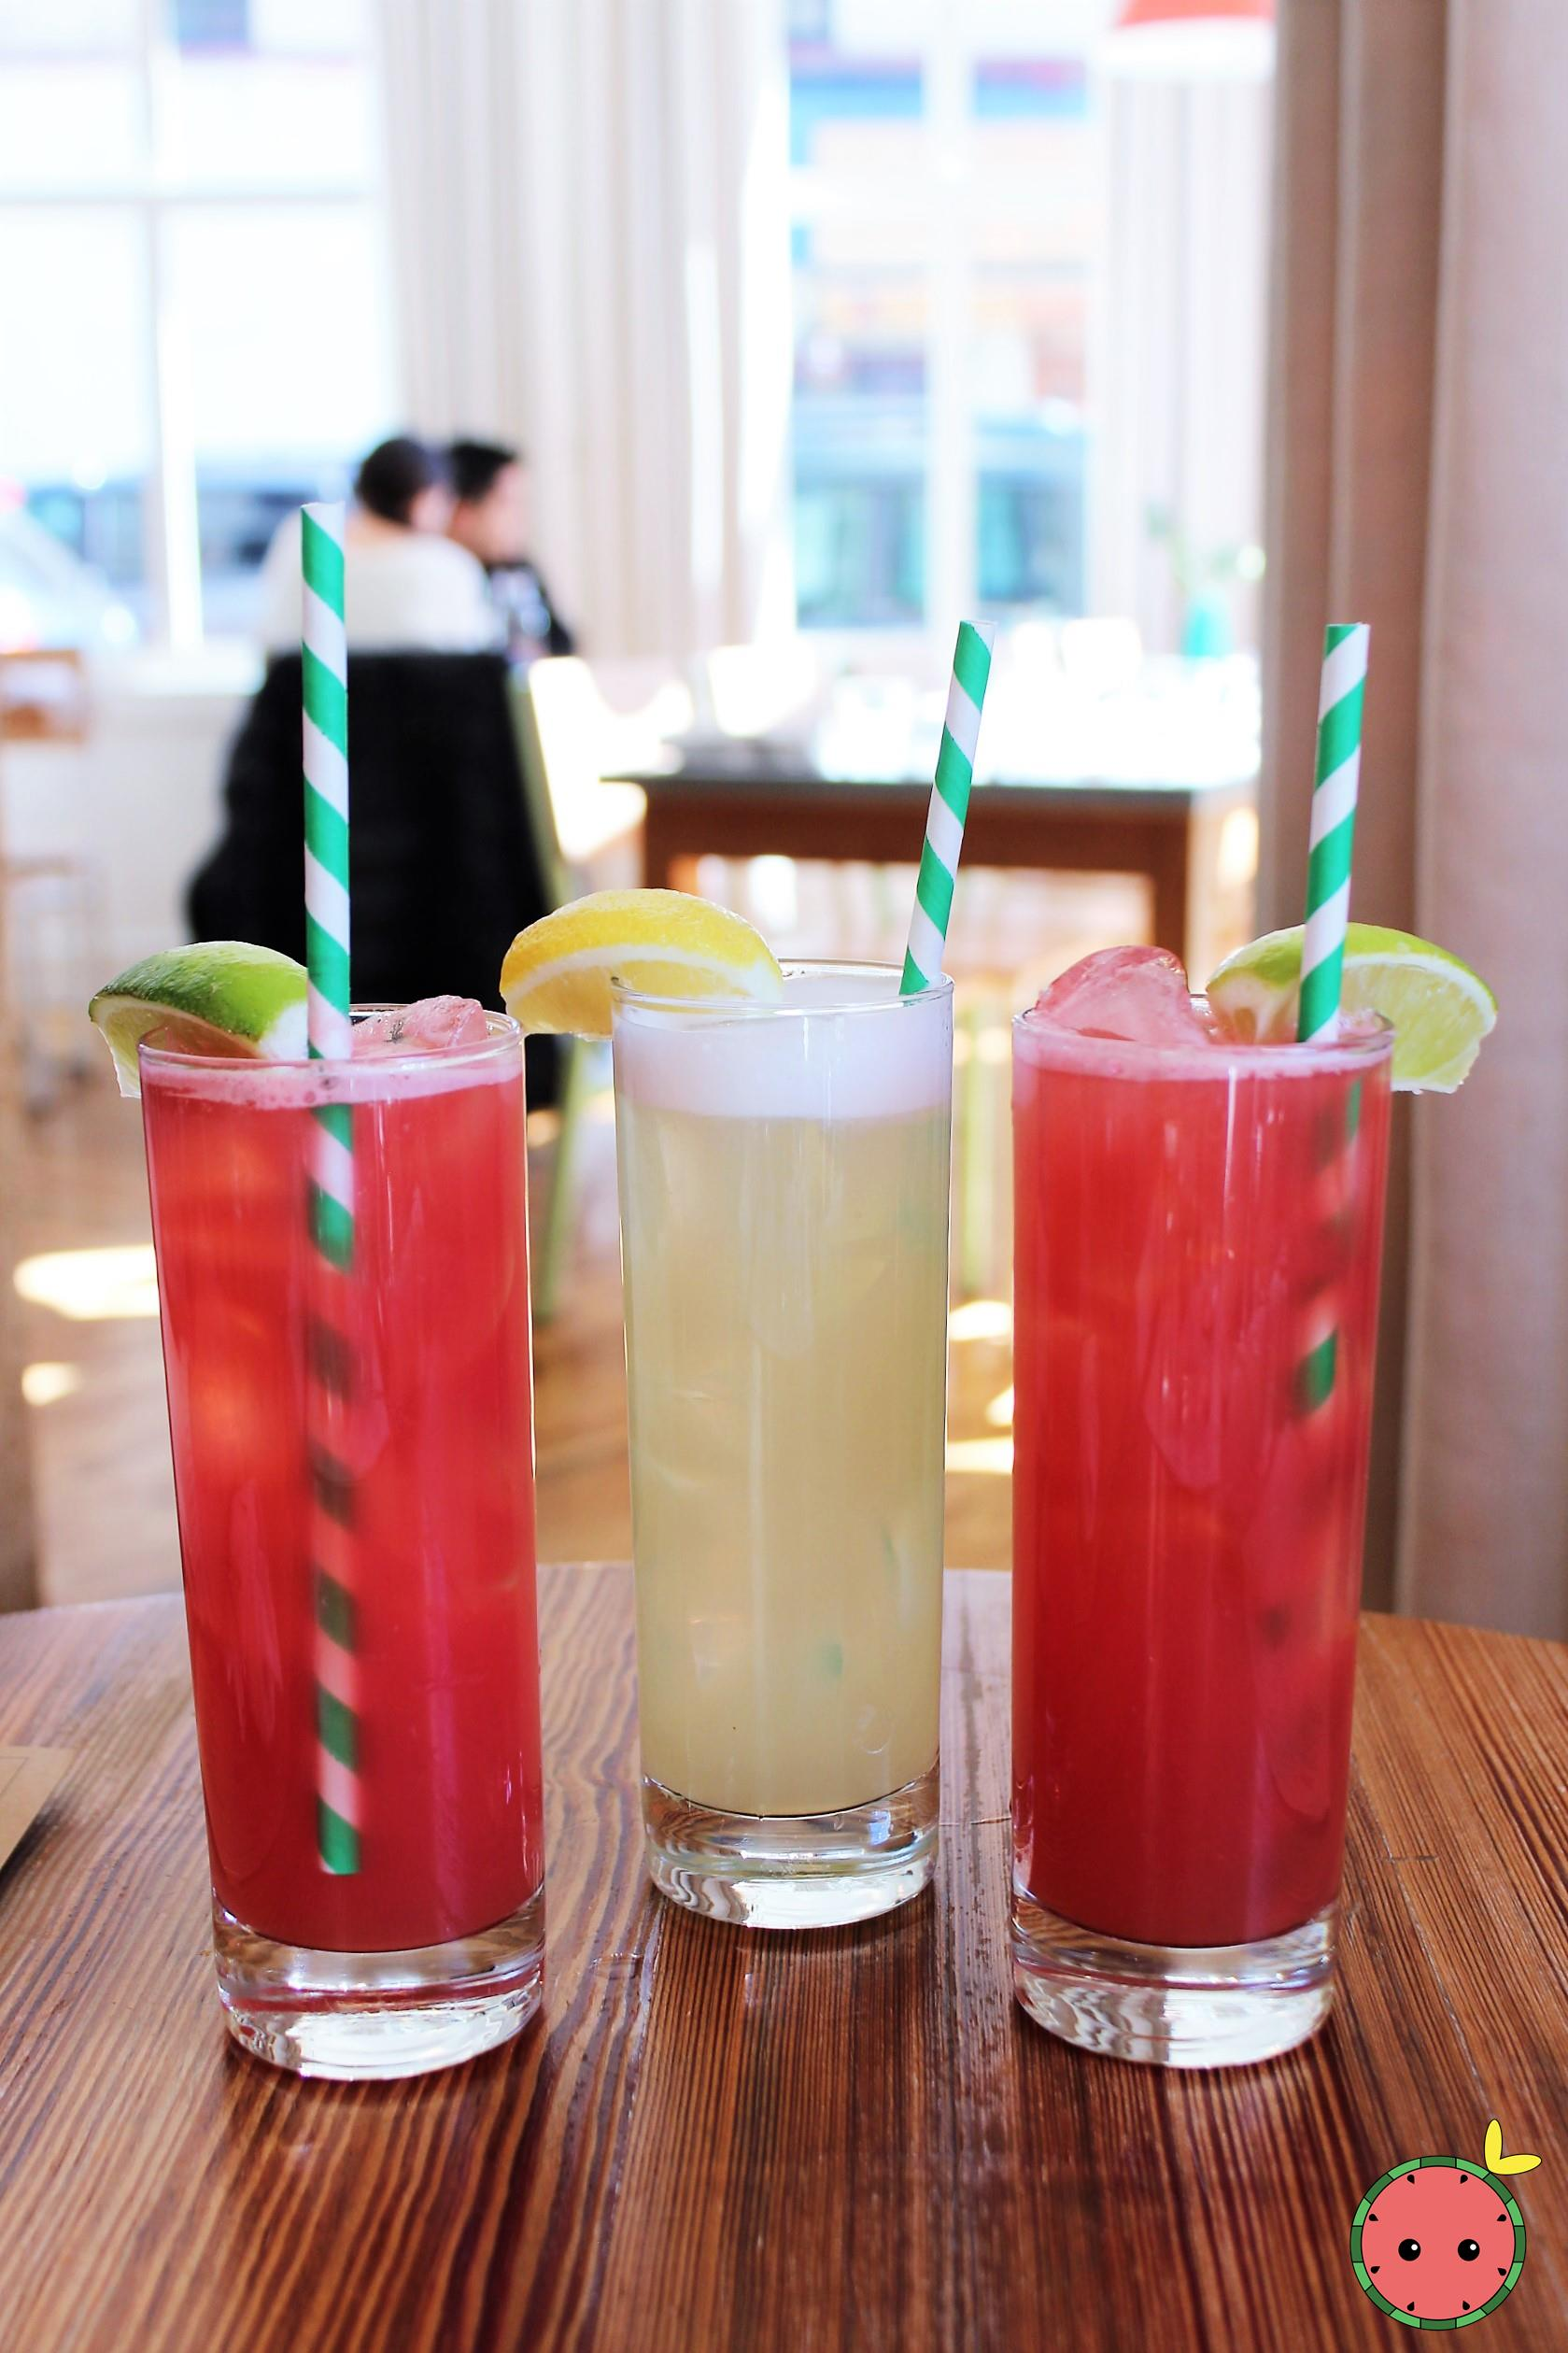 Watermelon Juice & Lemonade